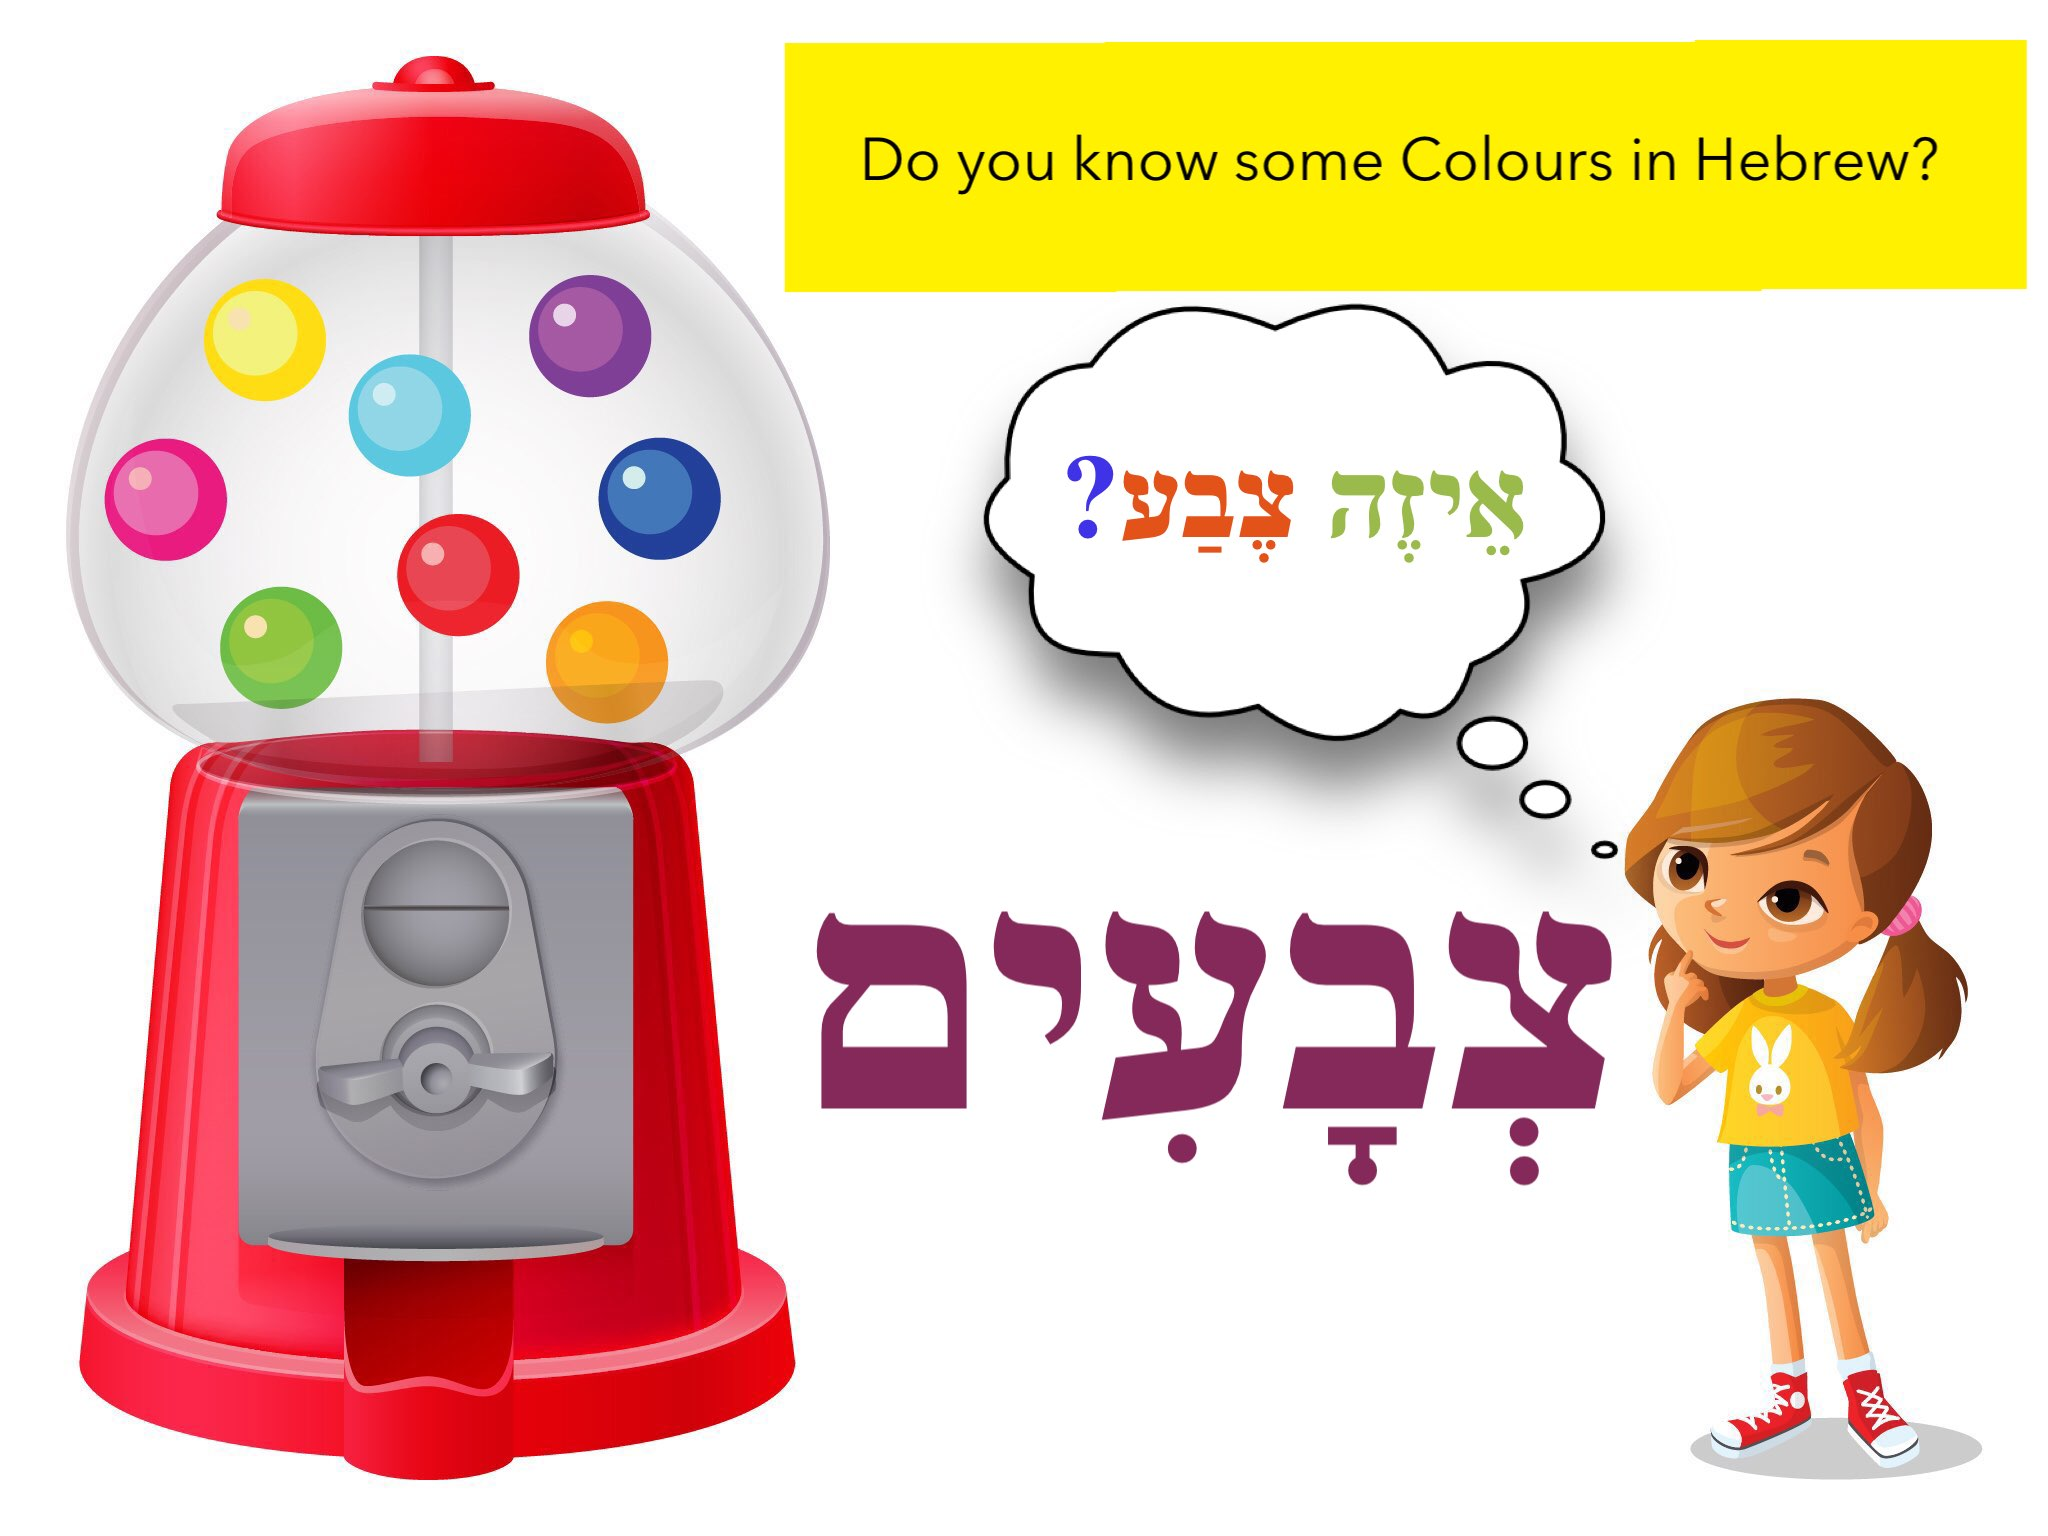 Play unit 1 birthday greetings by yr zegze on ji tap colours in hebrew learn some colours in hebrew with me reading and listening recognition kristyandbryce Images